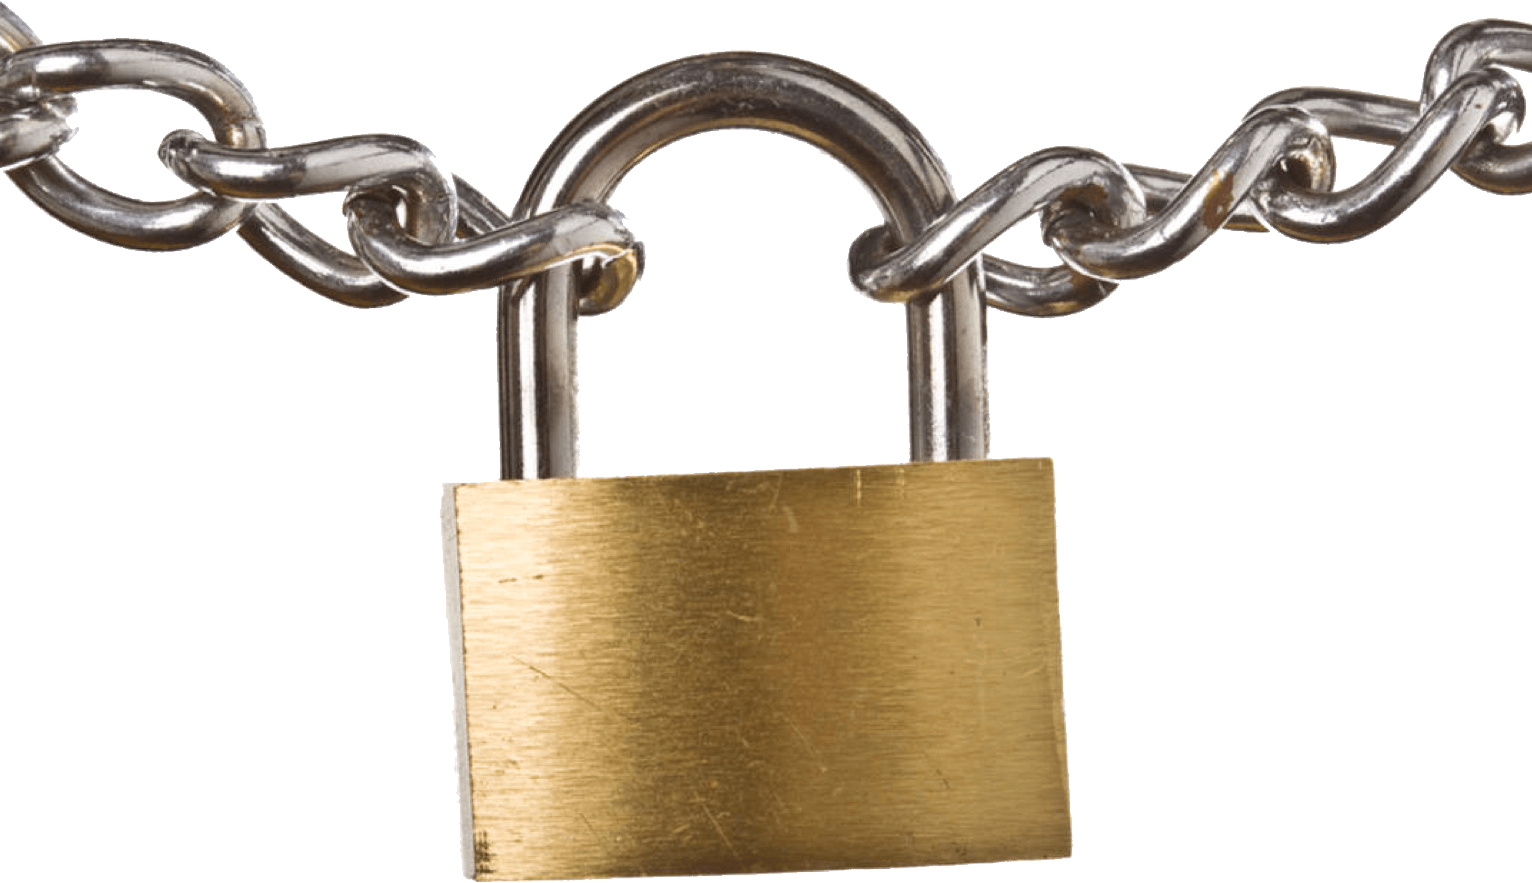 Padlock transparent stickpng. Chain lock png graphic library download